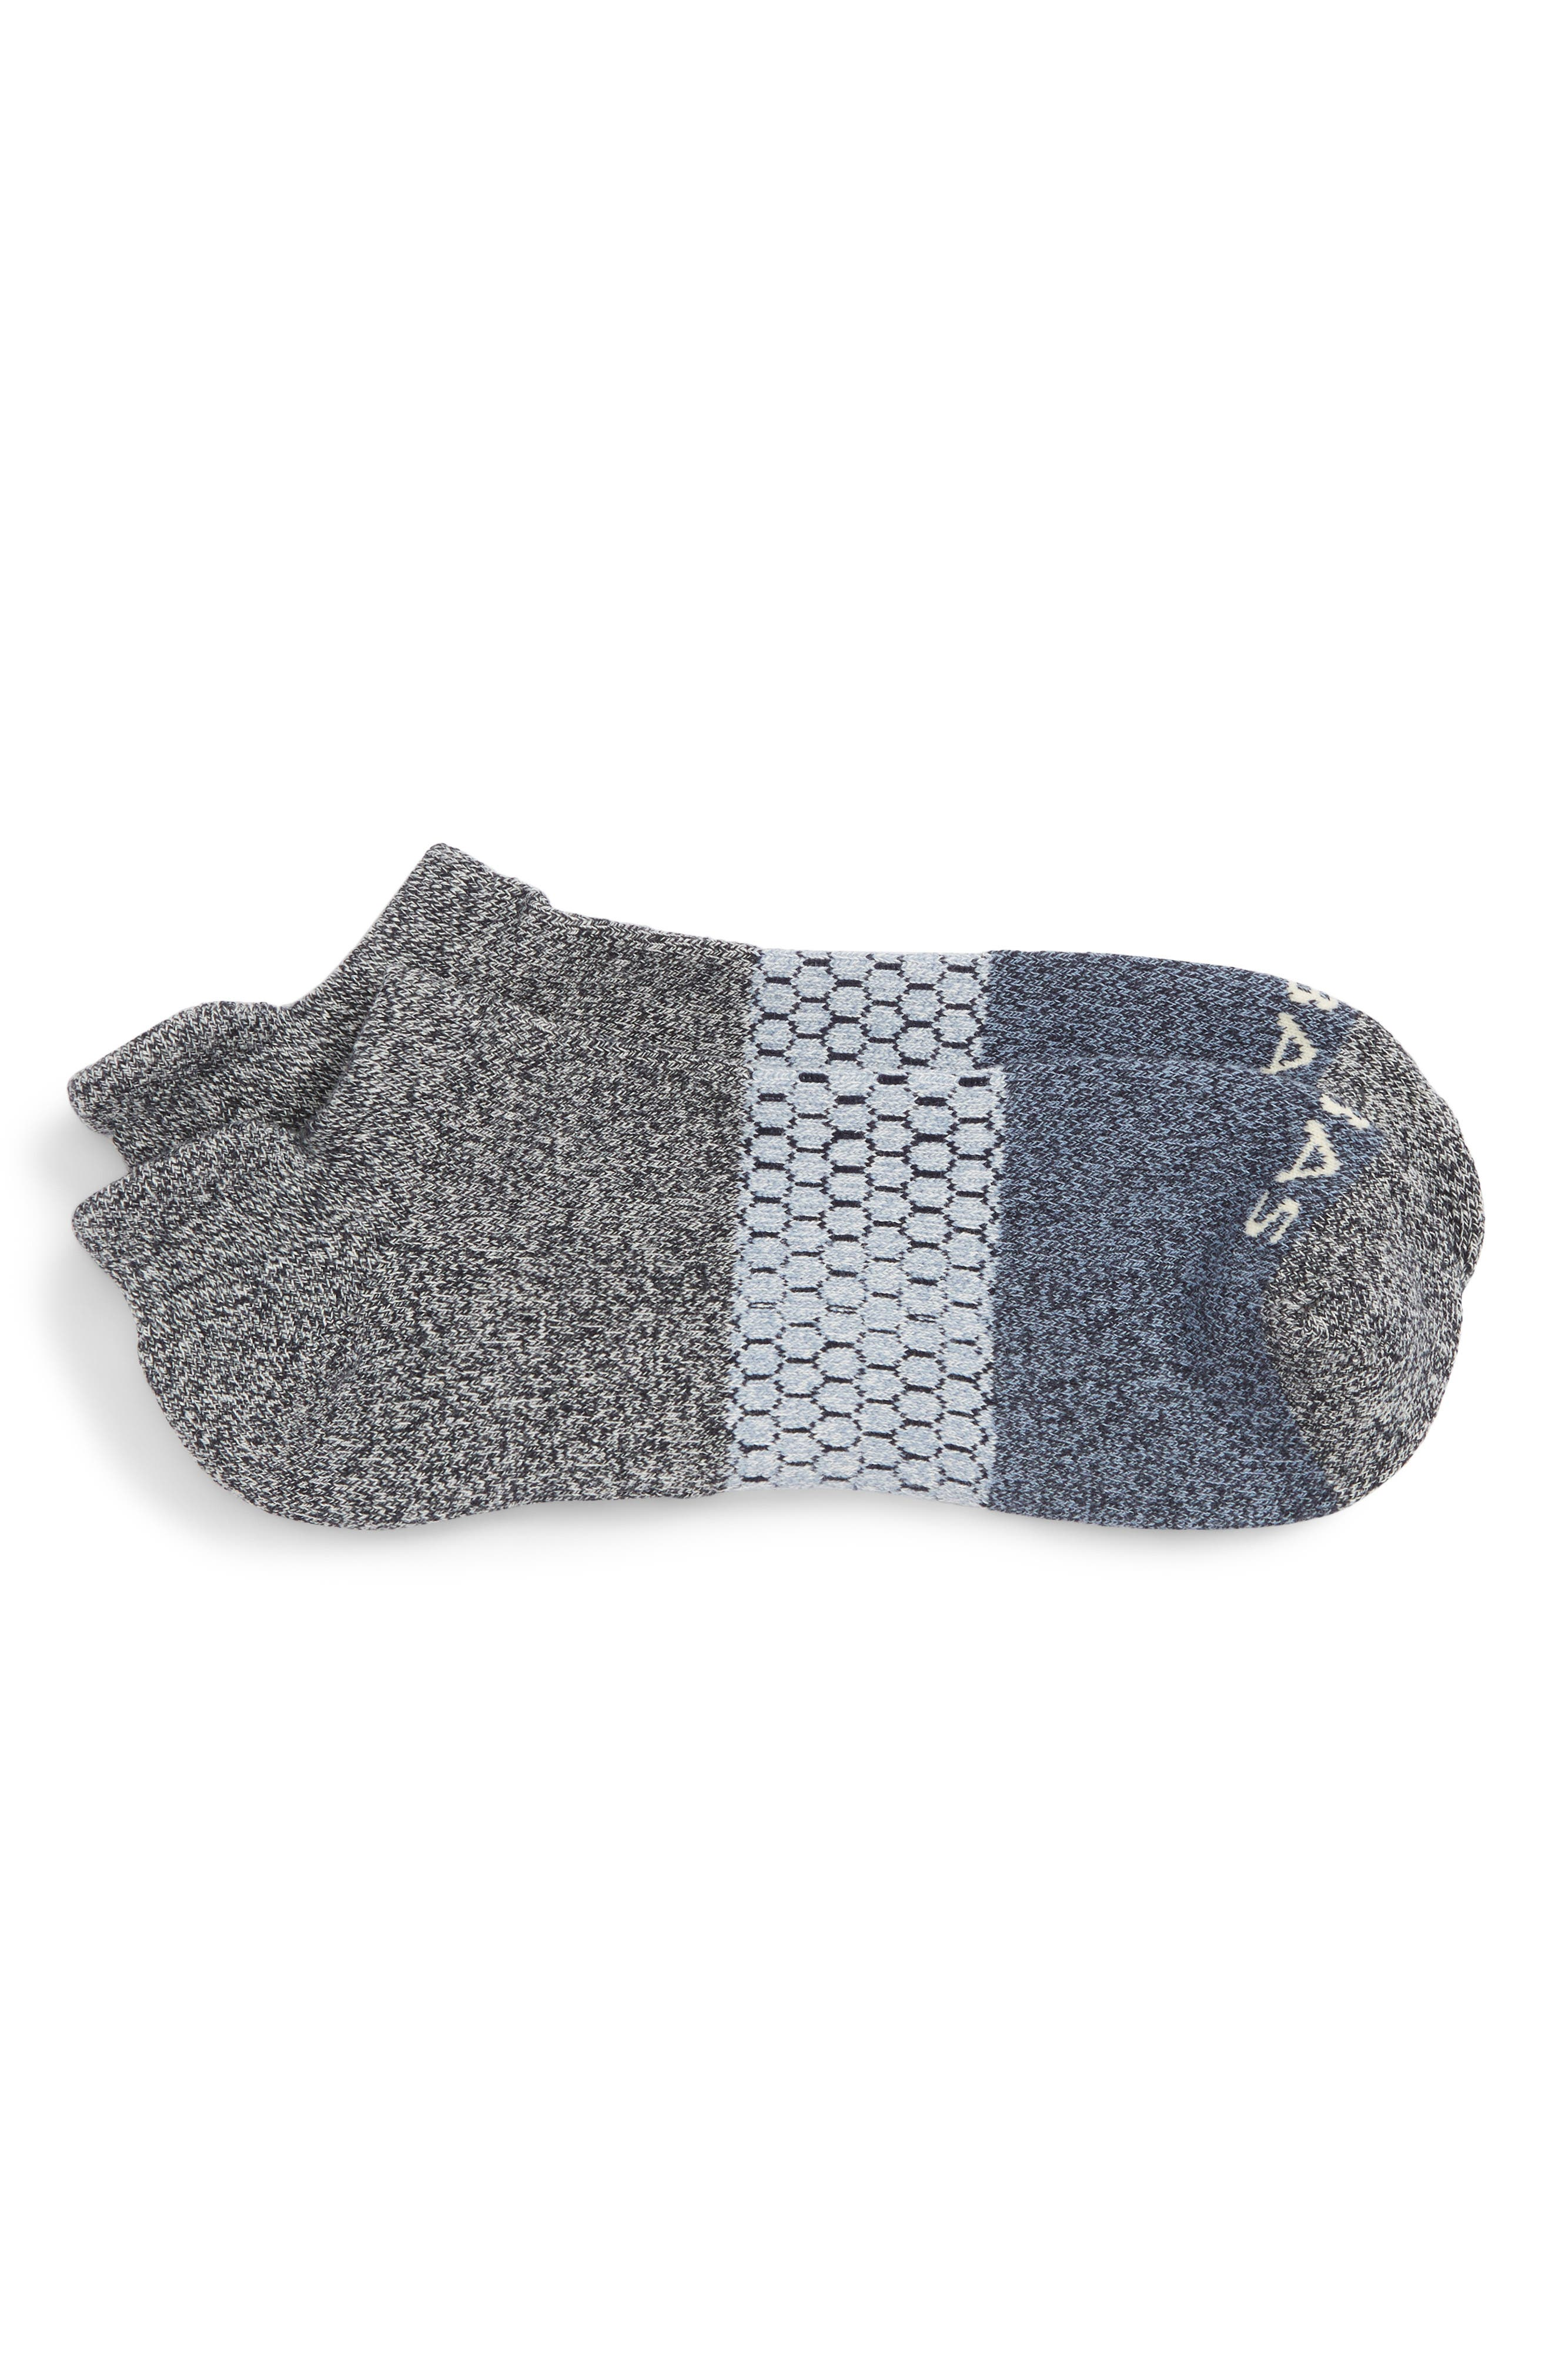 Colorblock Ankle Socks,                             Main thumbnail 1, color,                             MIDNIGHT/ SOFT BLUE/ GREY